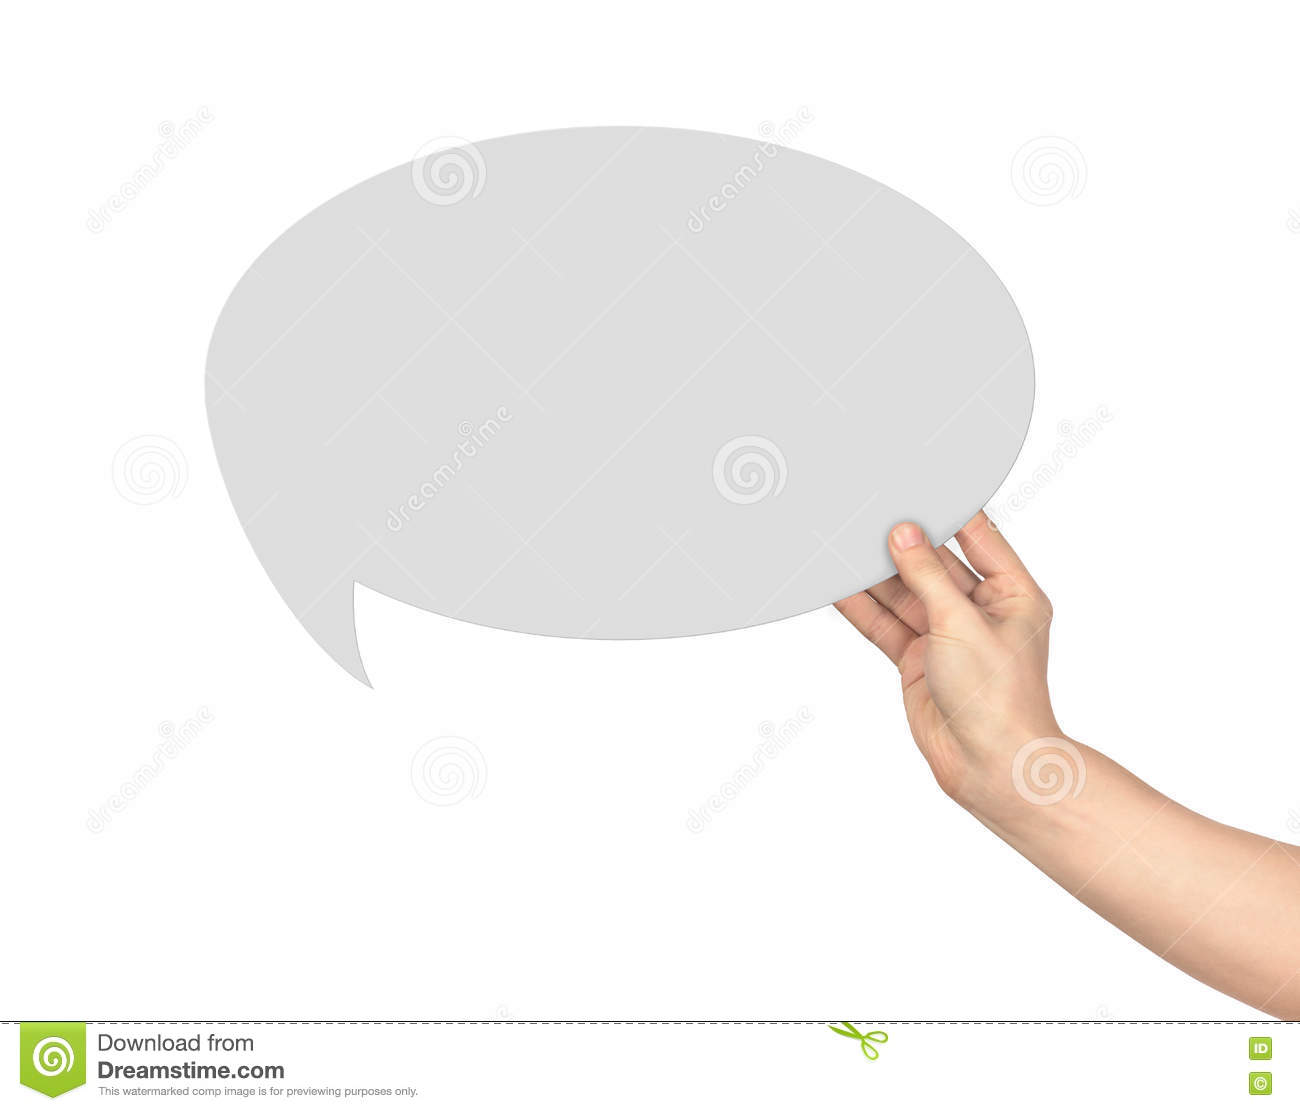 The hand holds a dialogue